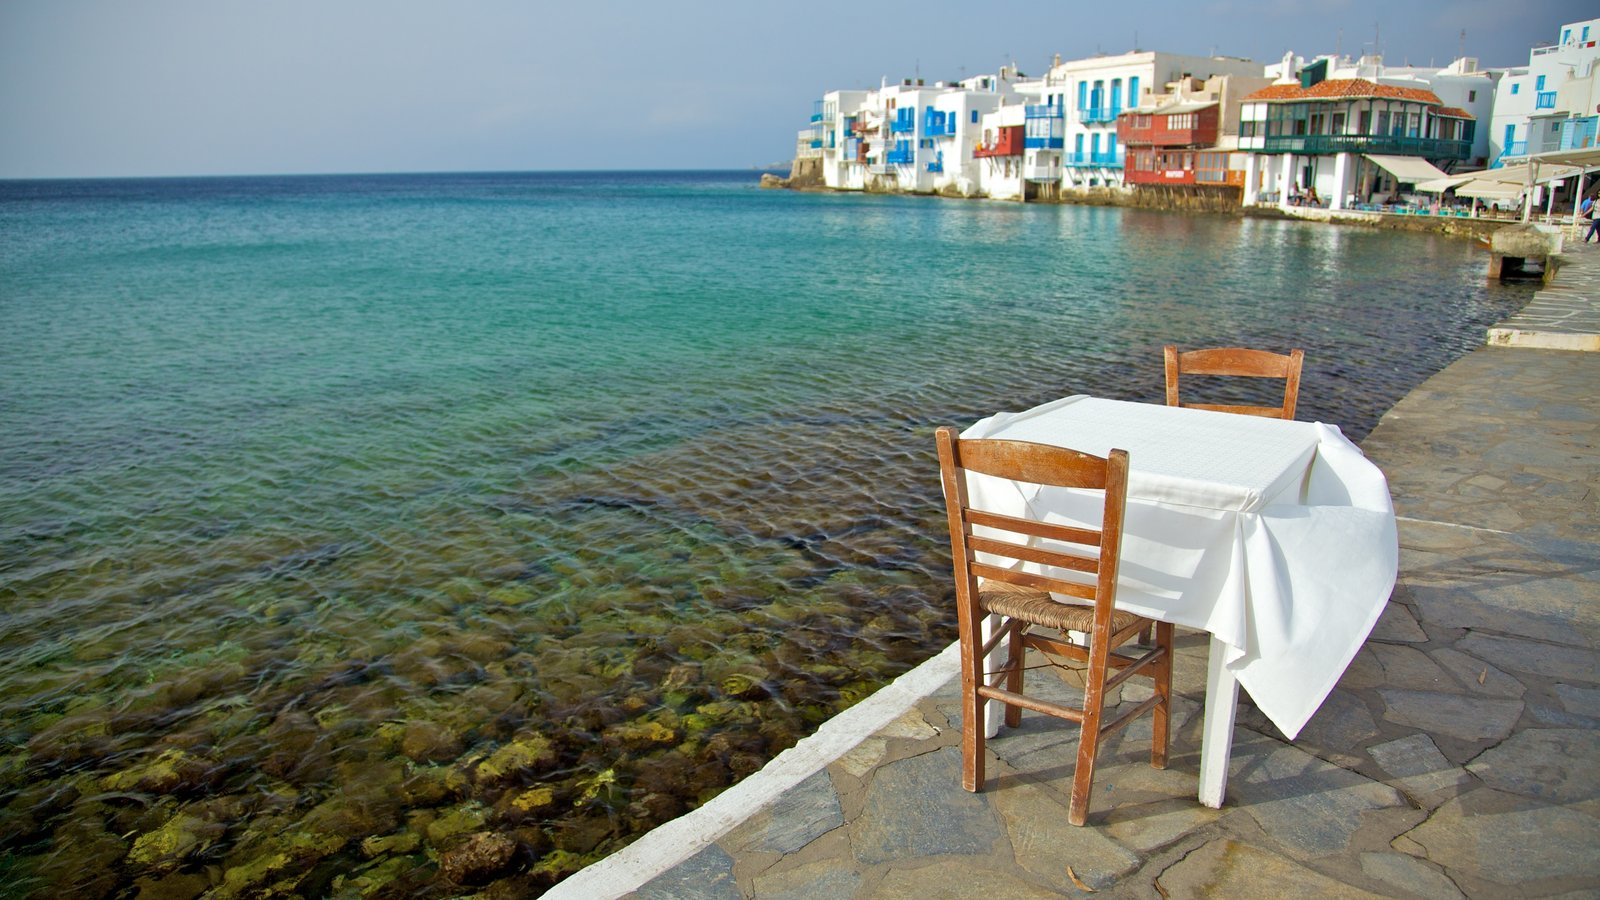 Mykonos Town which includes heritage architecture, a coastal town and general coastal views